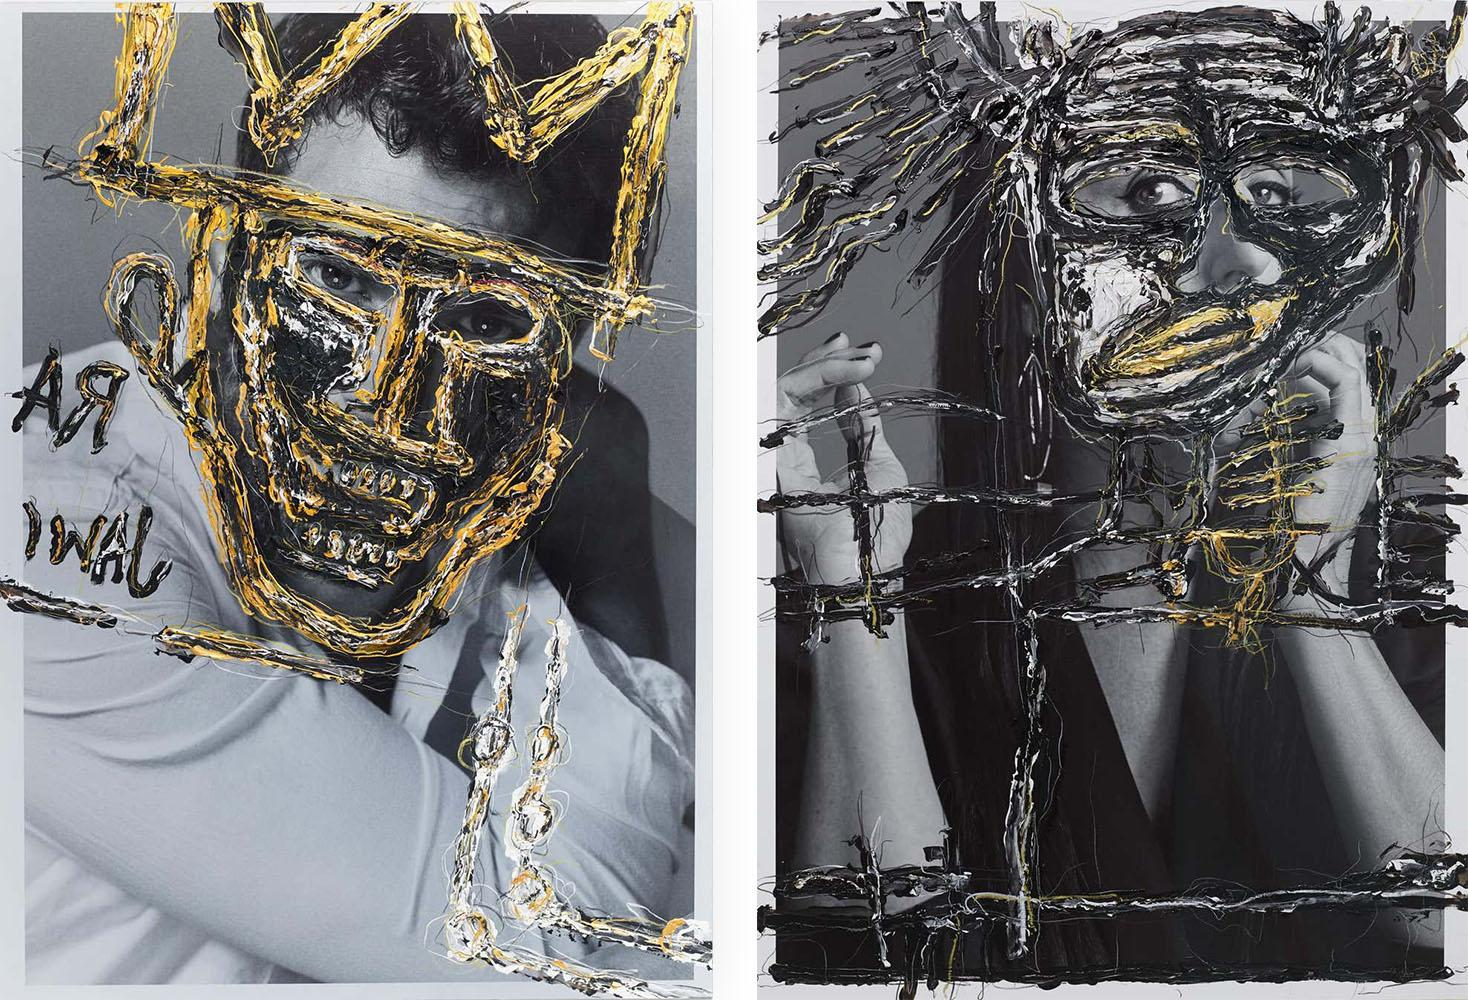 Diptych: Jamie and Rossy, One of a kind photo collage. Intervened by the artist